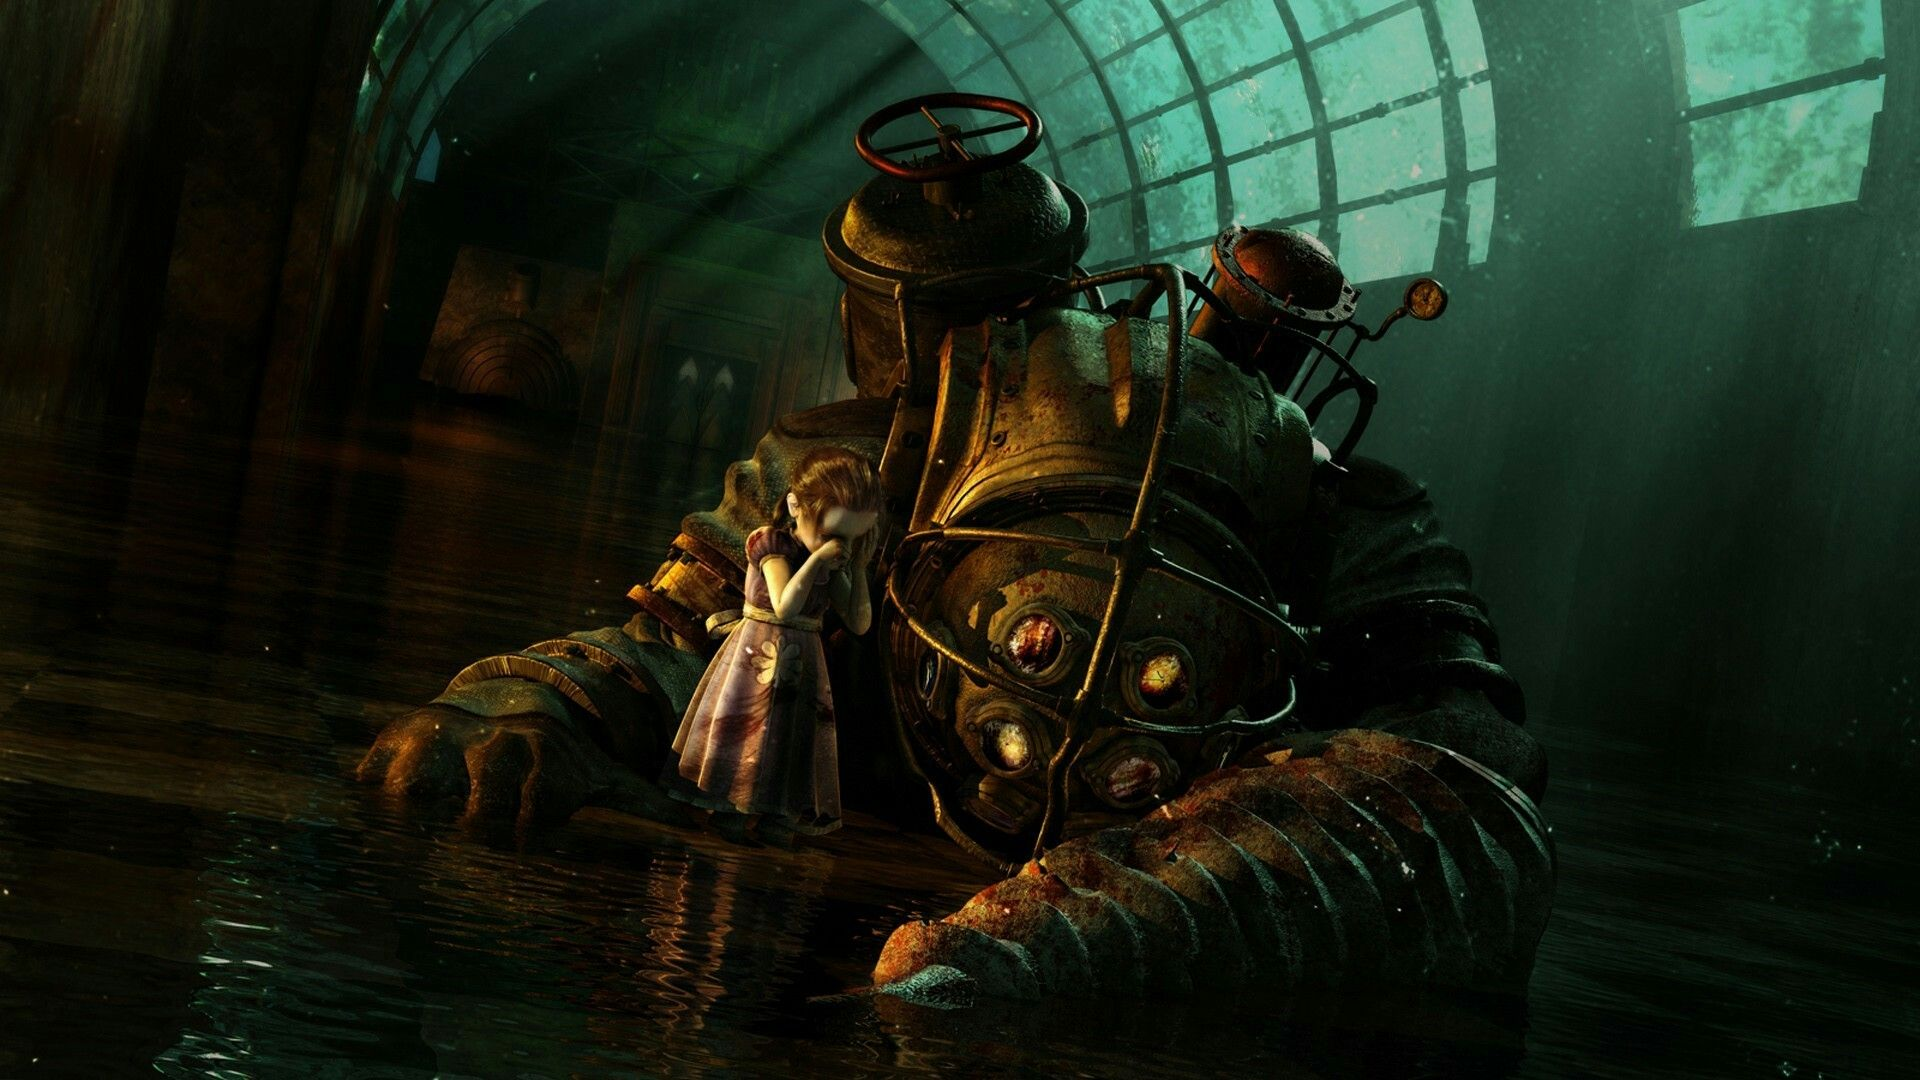 Page New IPad Air Mini Retina Bioshock Wallpapers